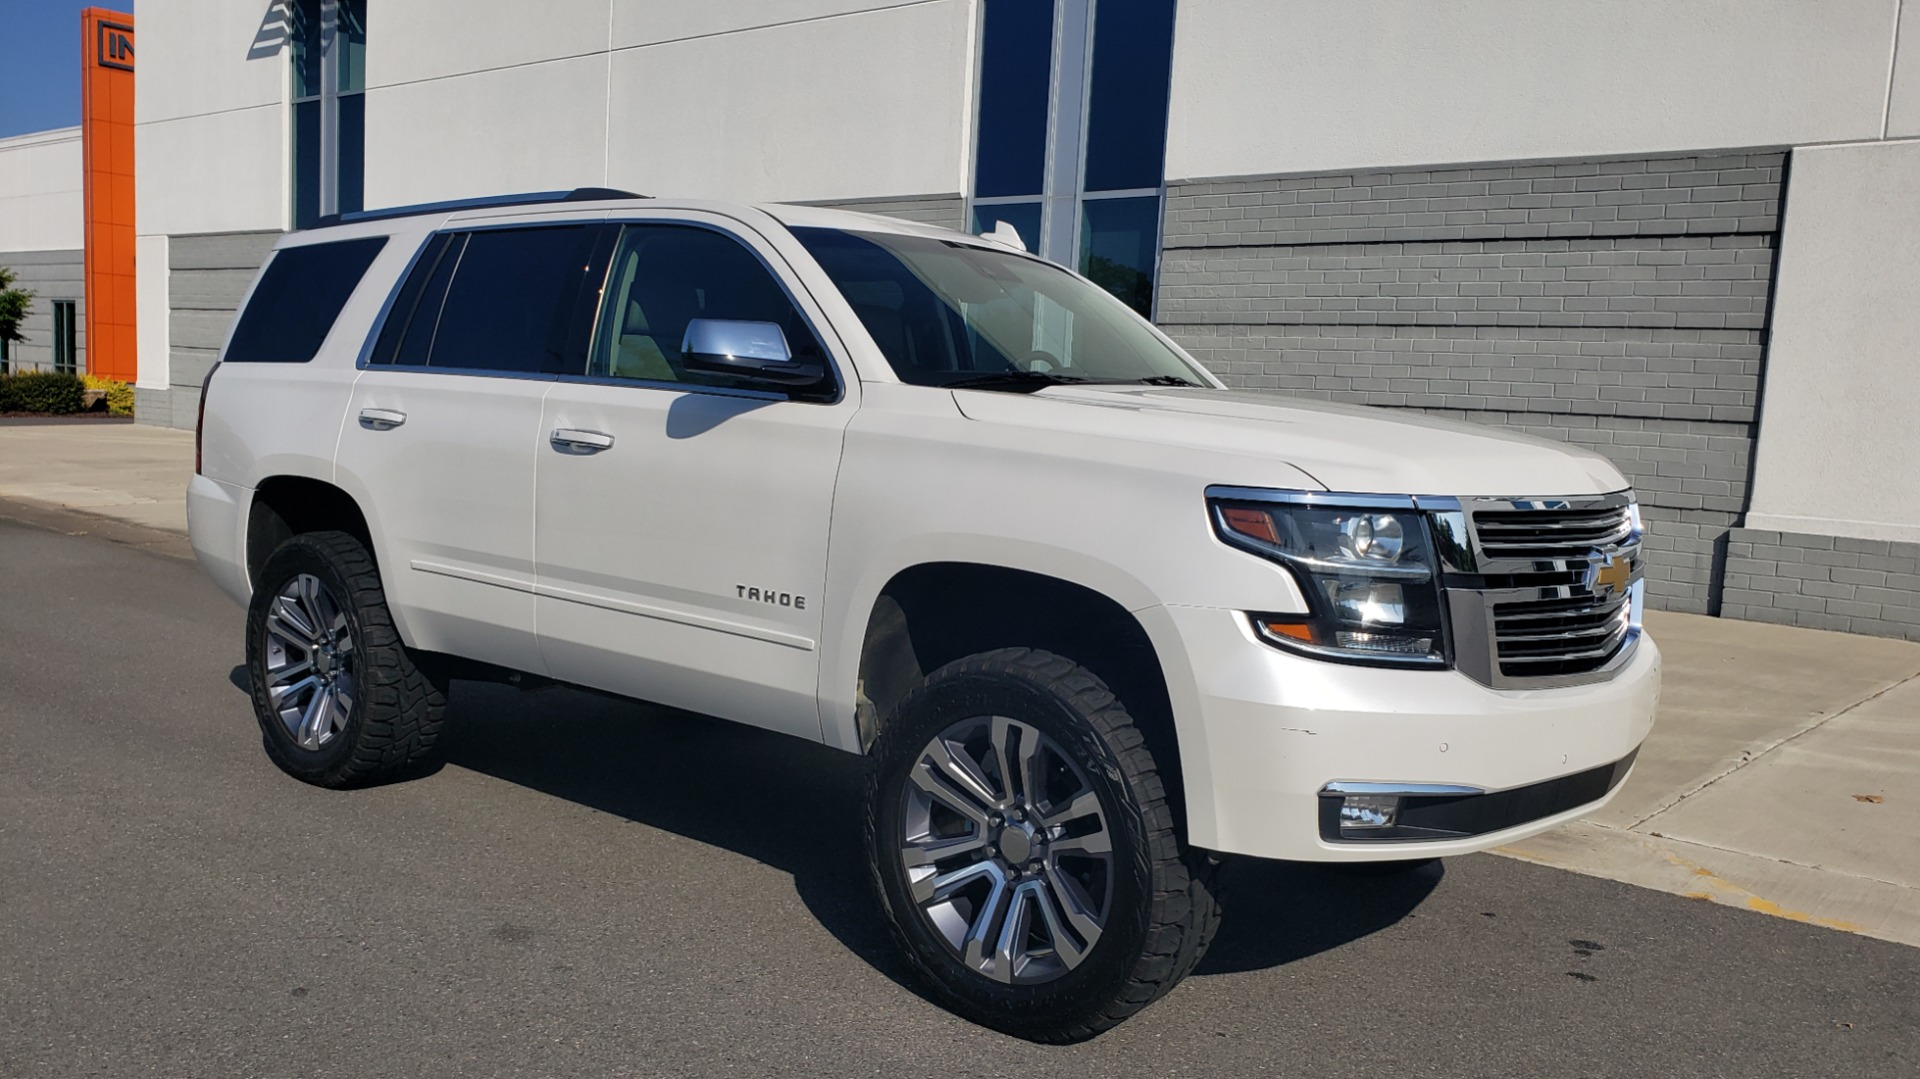 Used 2018 Chevrolet TAHOE PREMIER 4X4 / NAV / BOSE / SUNROOF / ENT SYS / 3-ROW / REARVIEW for sale $55,995 at Formula Imports in Charlotte NC 28227 6